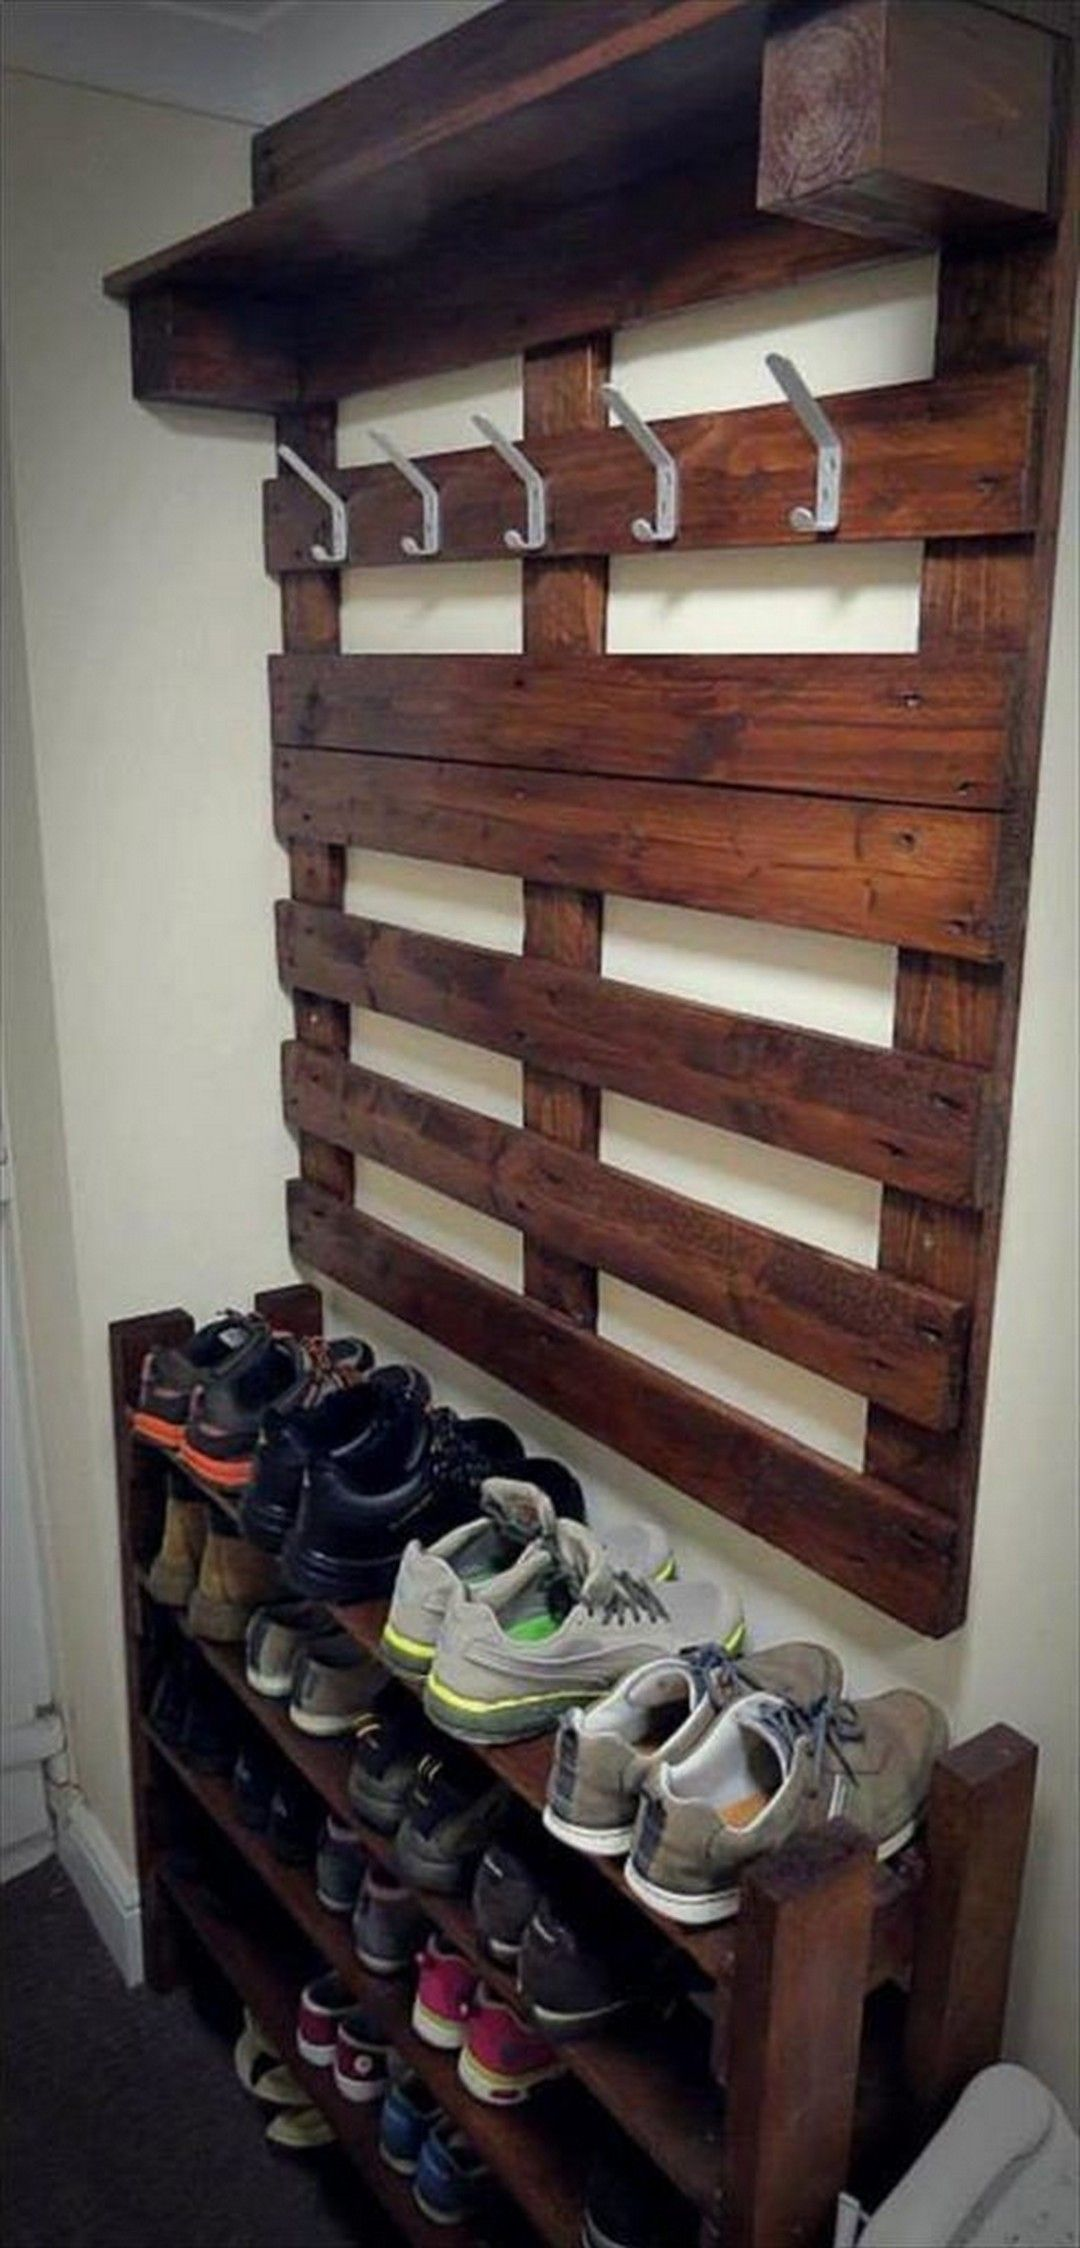 43 Awesome Shoe Rack Ideas Concepts For Storing Your Shoes